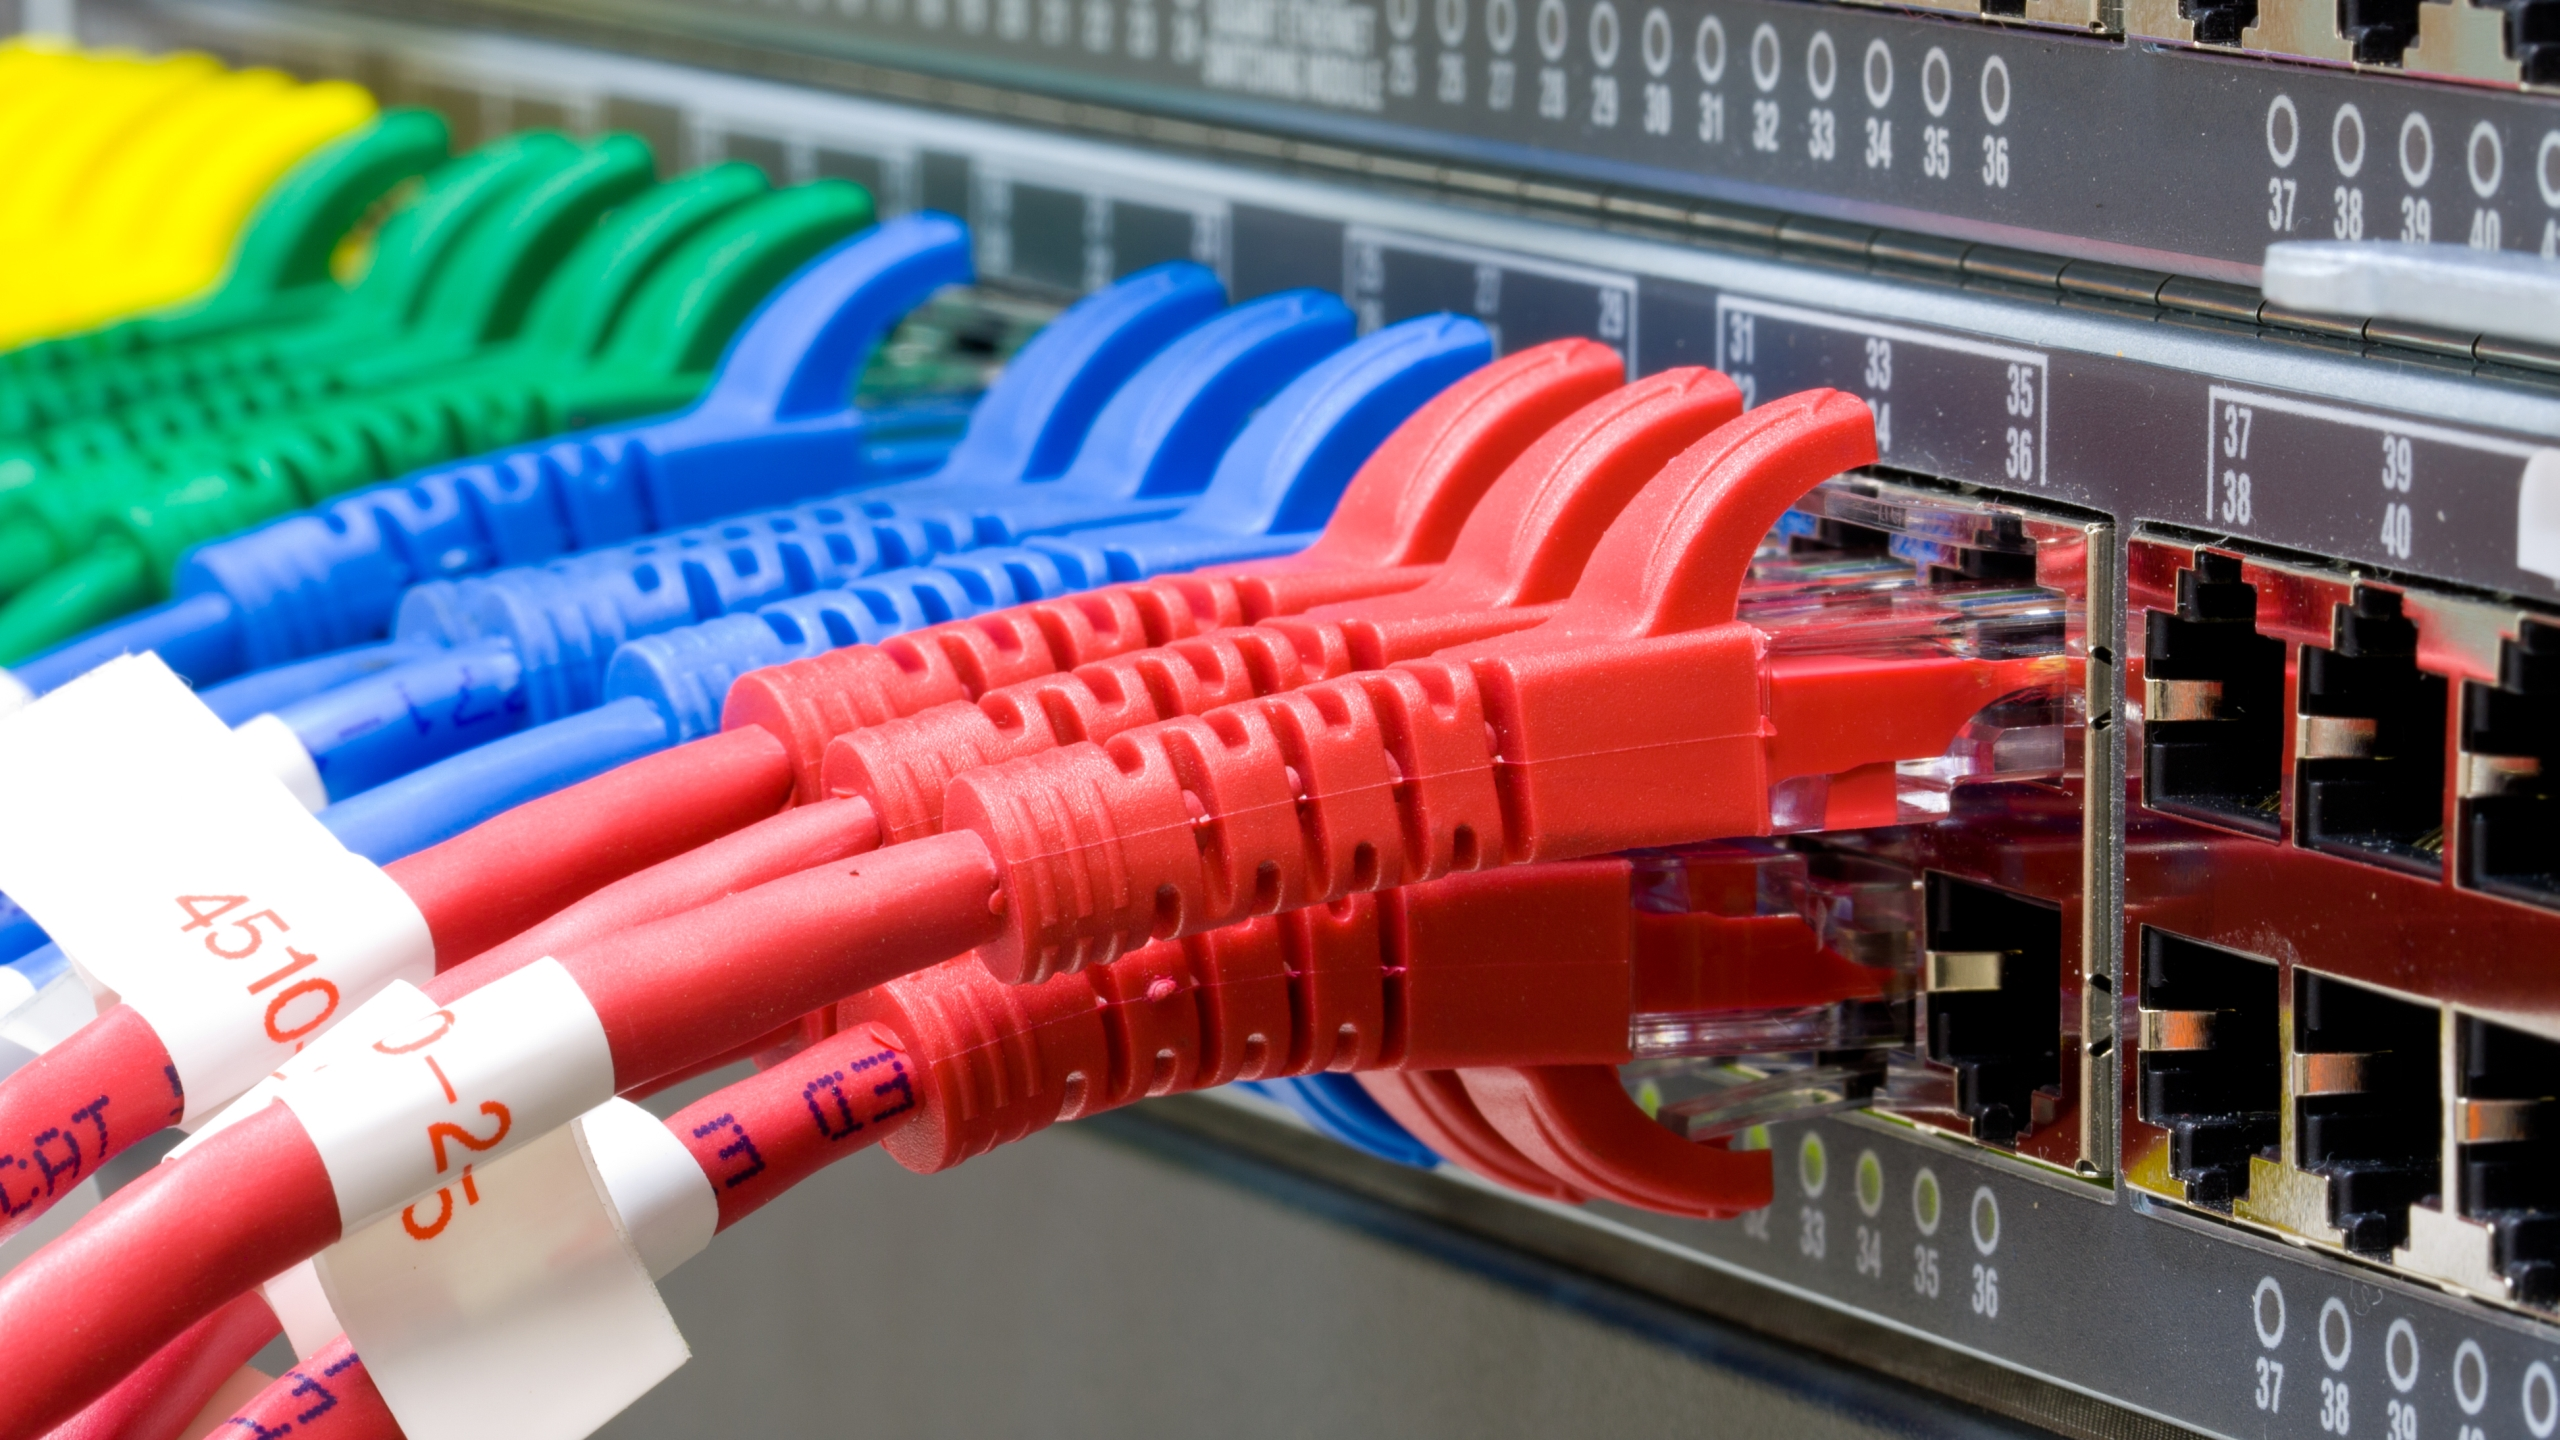 Centralia IL High Quality Voice & Data Networking, Low Voltage Cabling Services